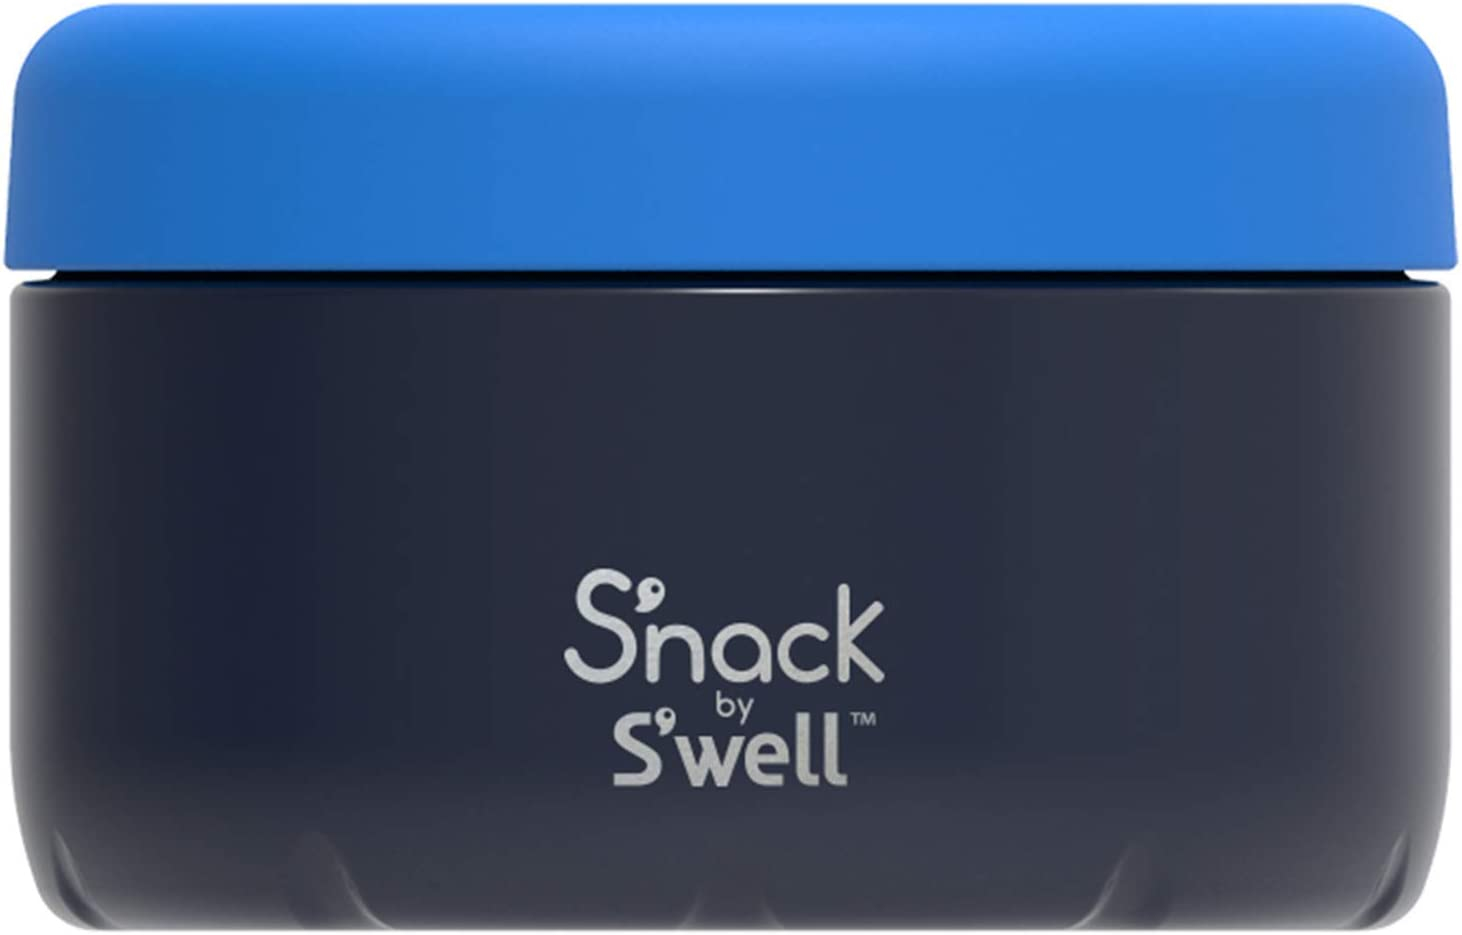 S'nack by S'well Stainless Steel Food Container - 10 Oz - Dark Navy - Double - Layered Insulated Bowls Keep Food Cold and Hot